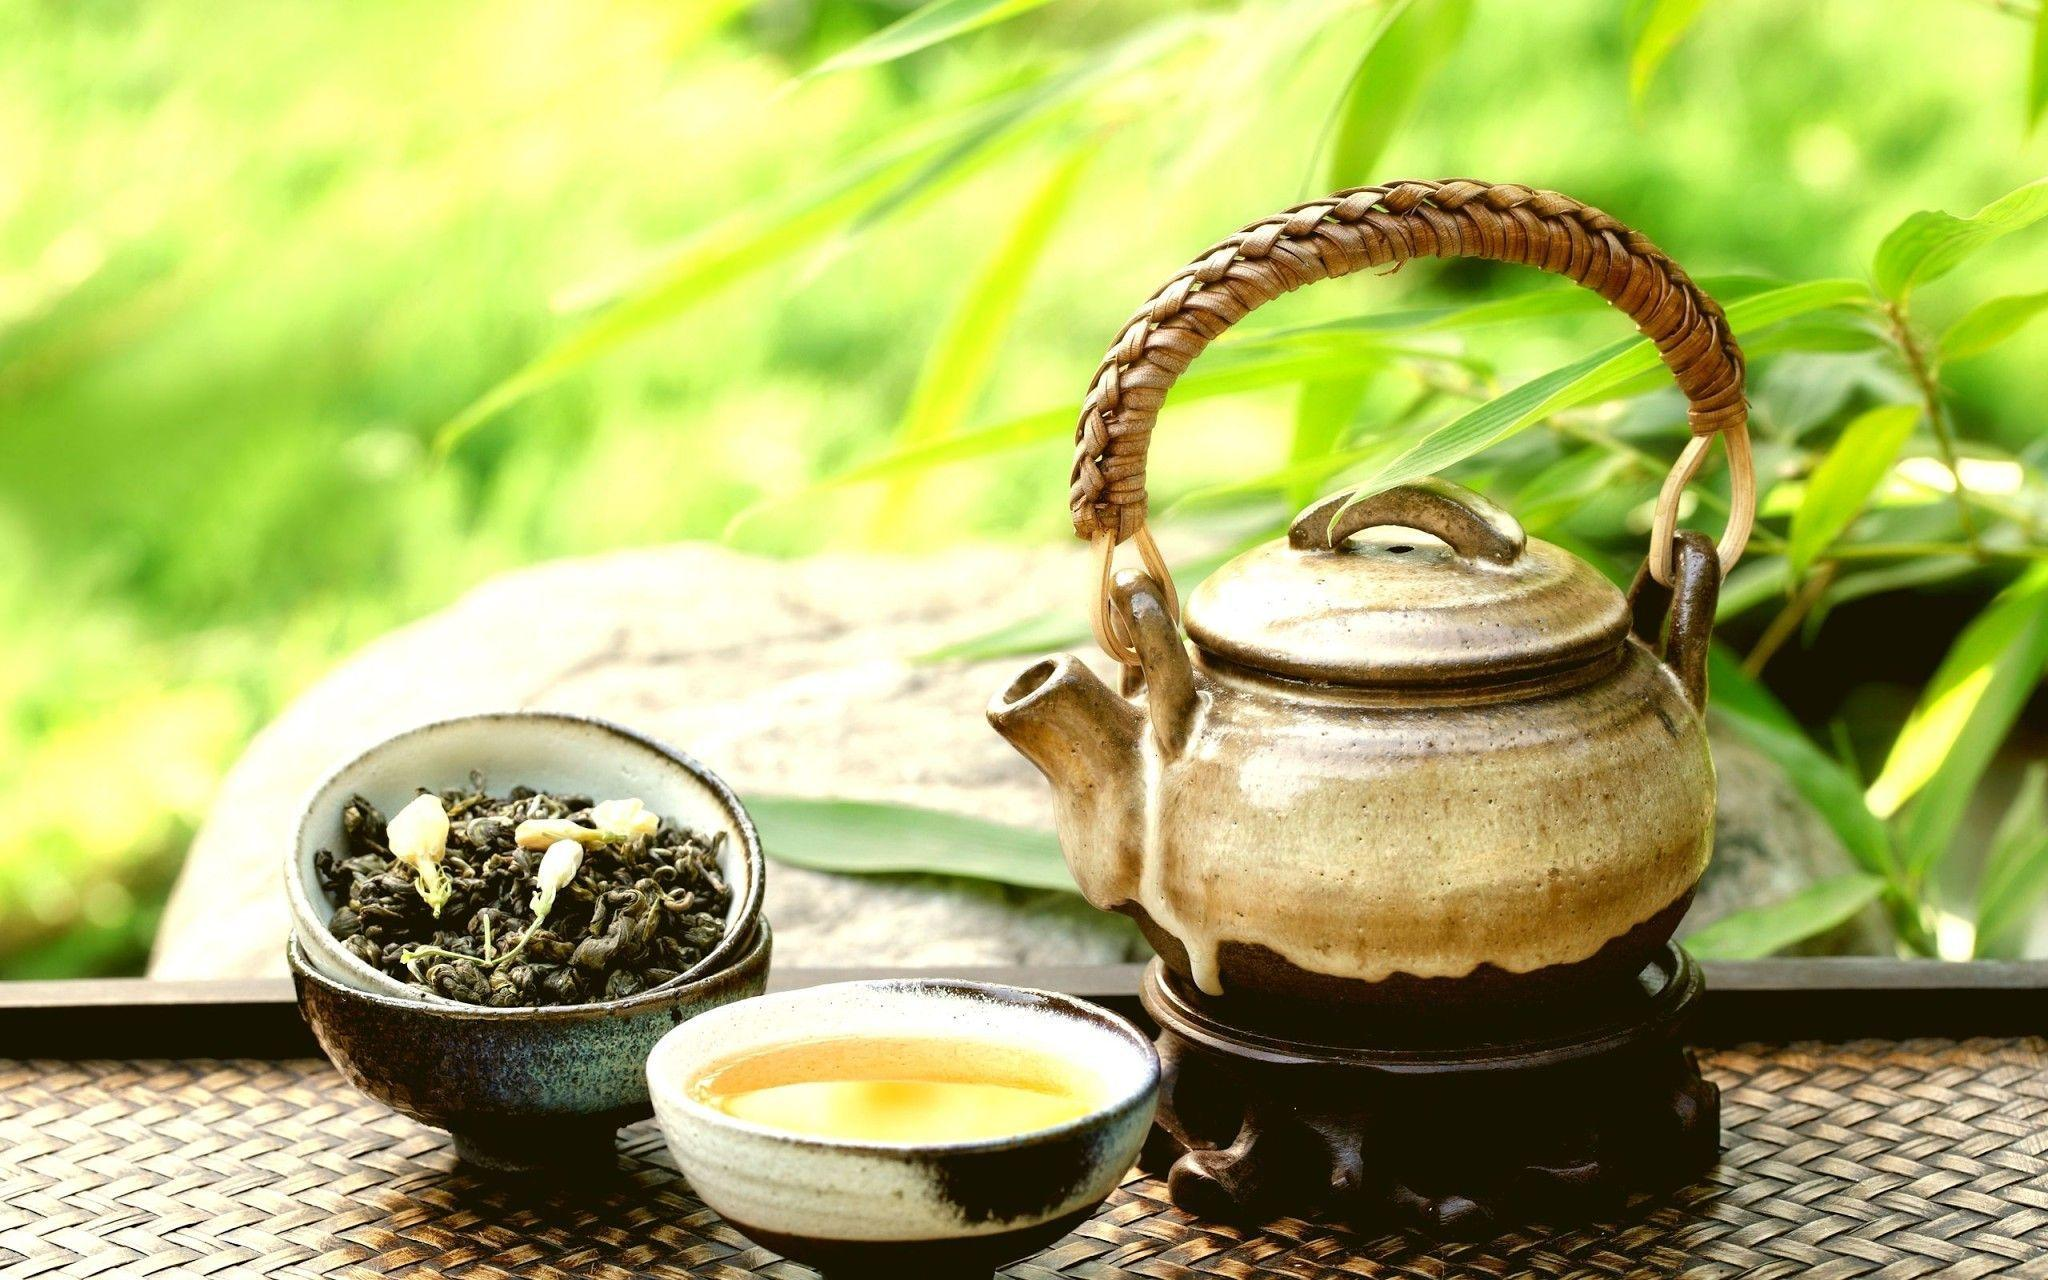 Green Tea Wallpapers Wallpaper Cave